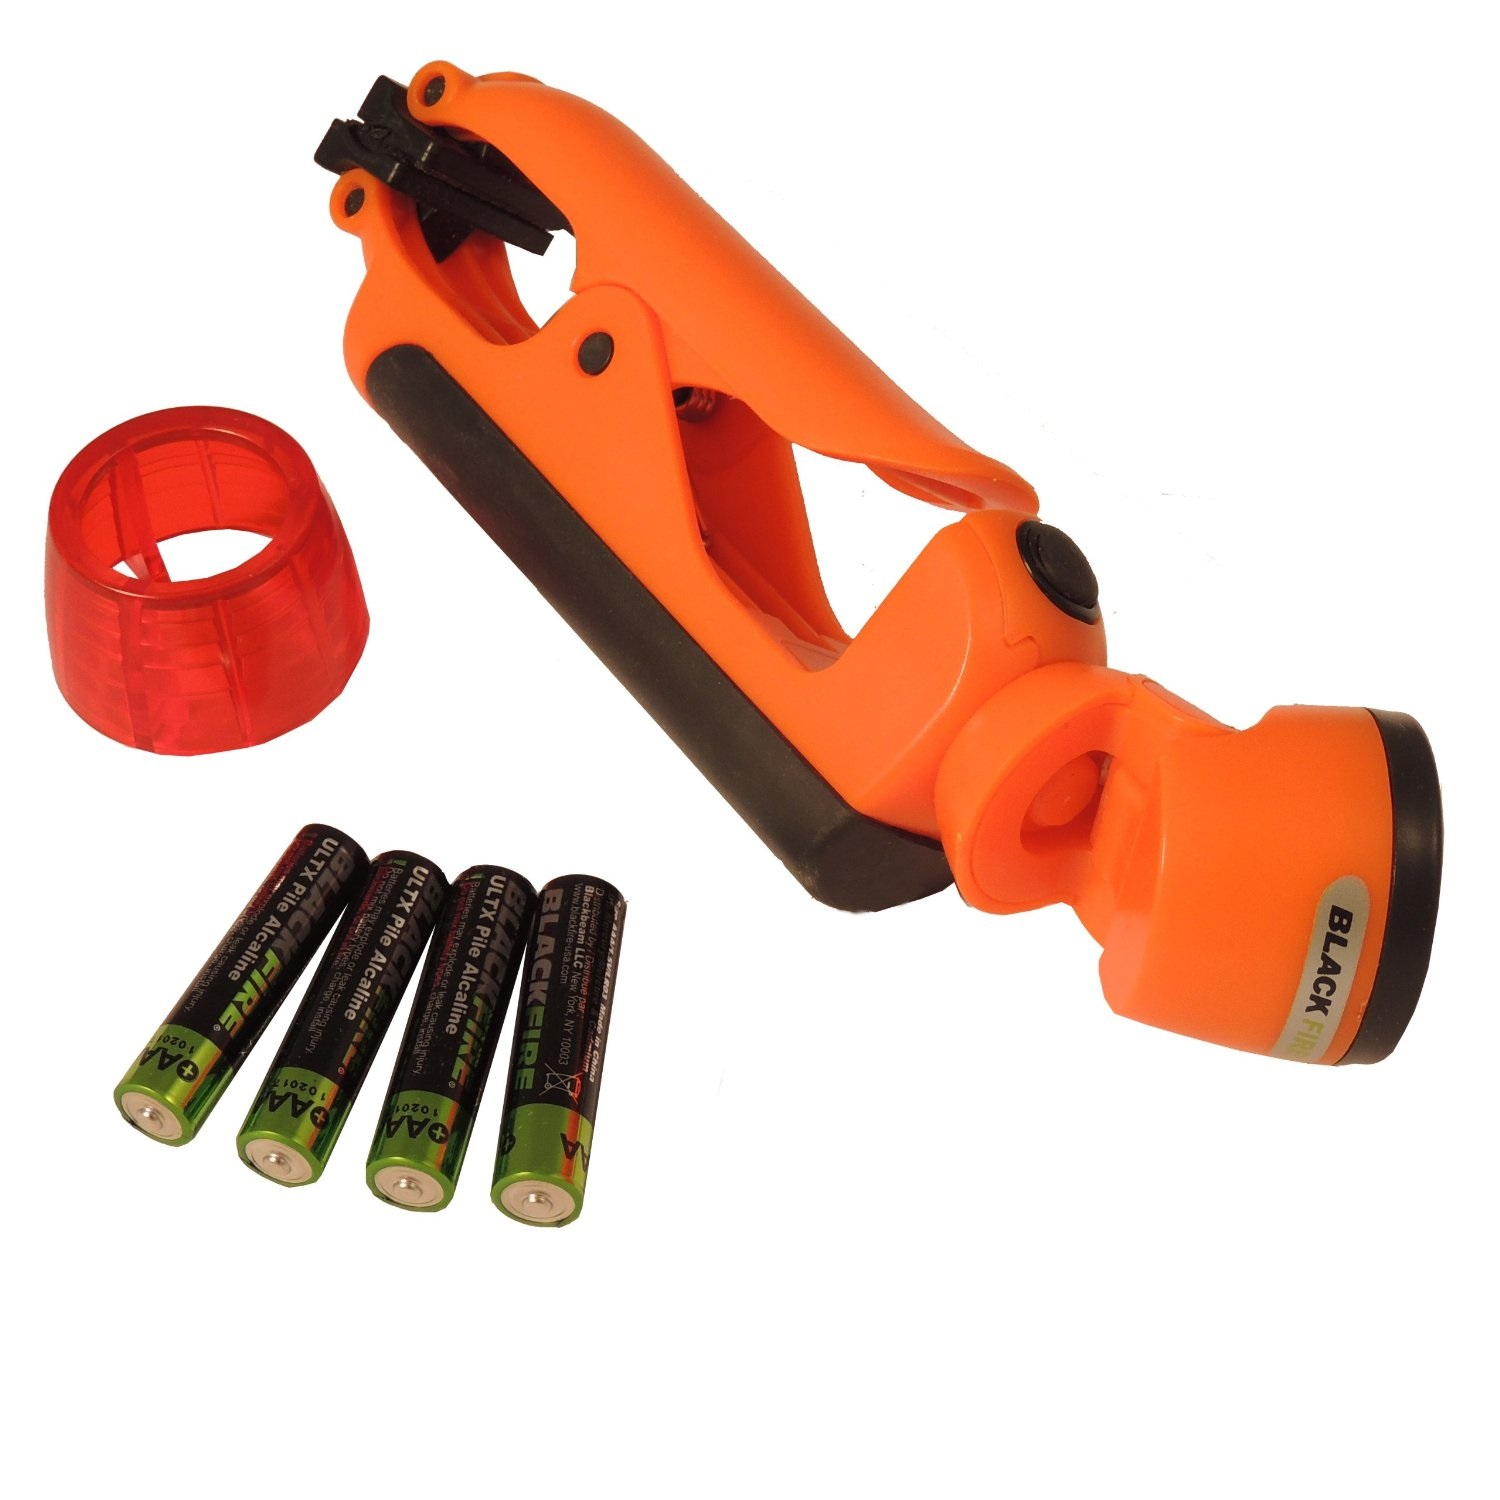 Clamplight Emergency, Emergency Orange, 100 lm, 3x AAA